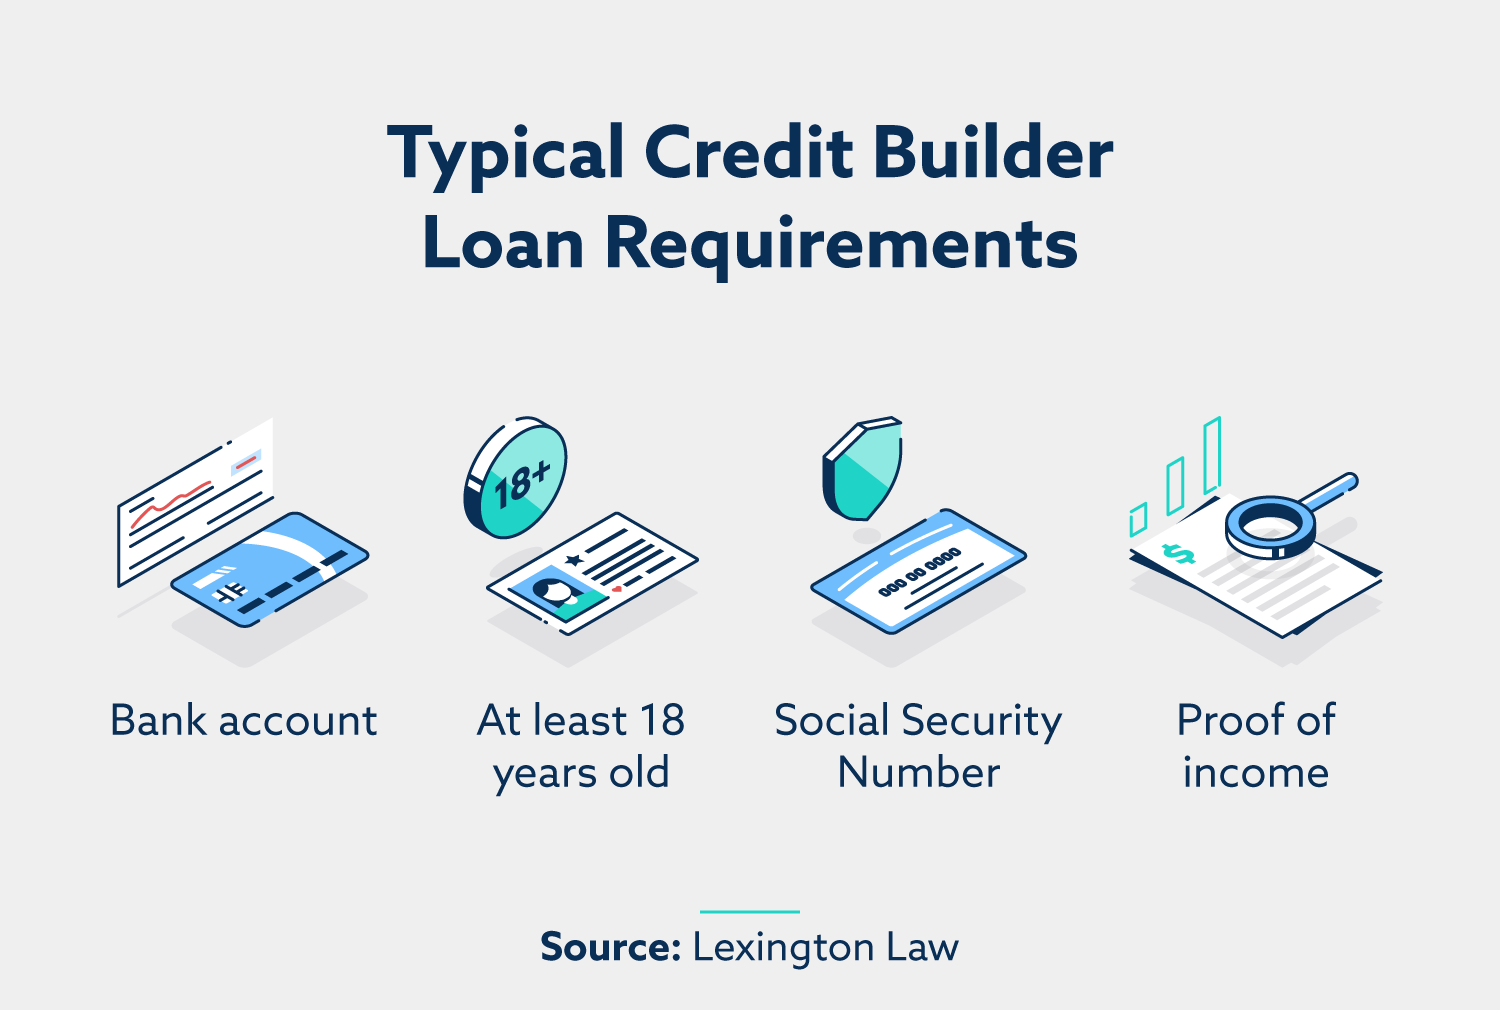 requirements for credit builder loans